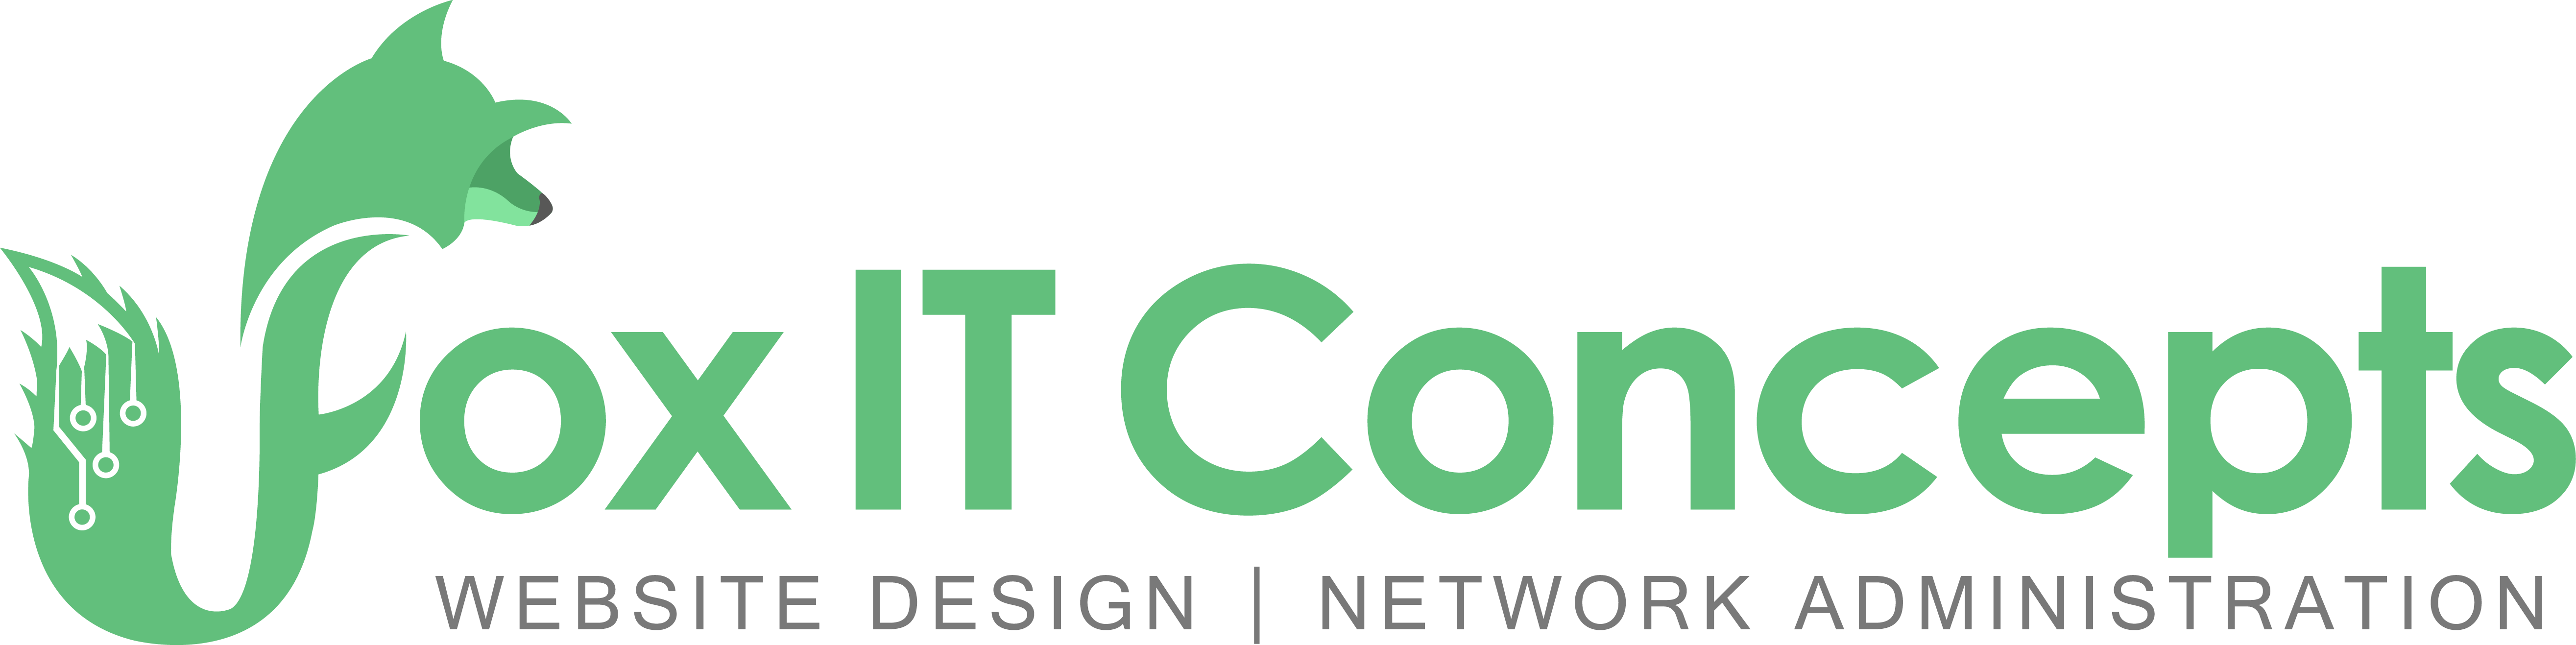 Steven's Logo for his IT business, Fox IT Concepts, was established in January 2018.